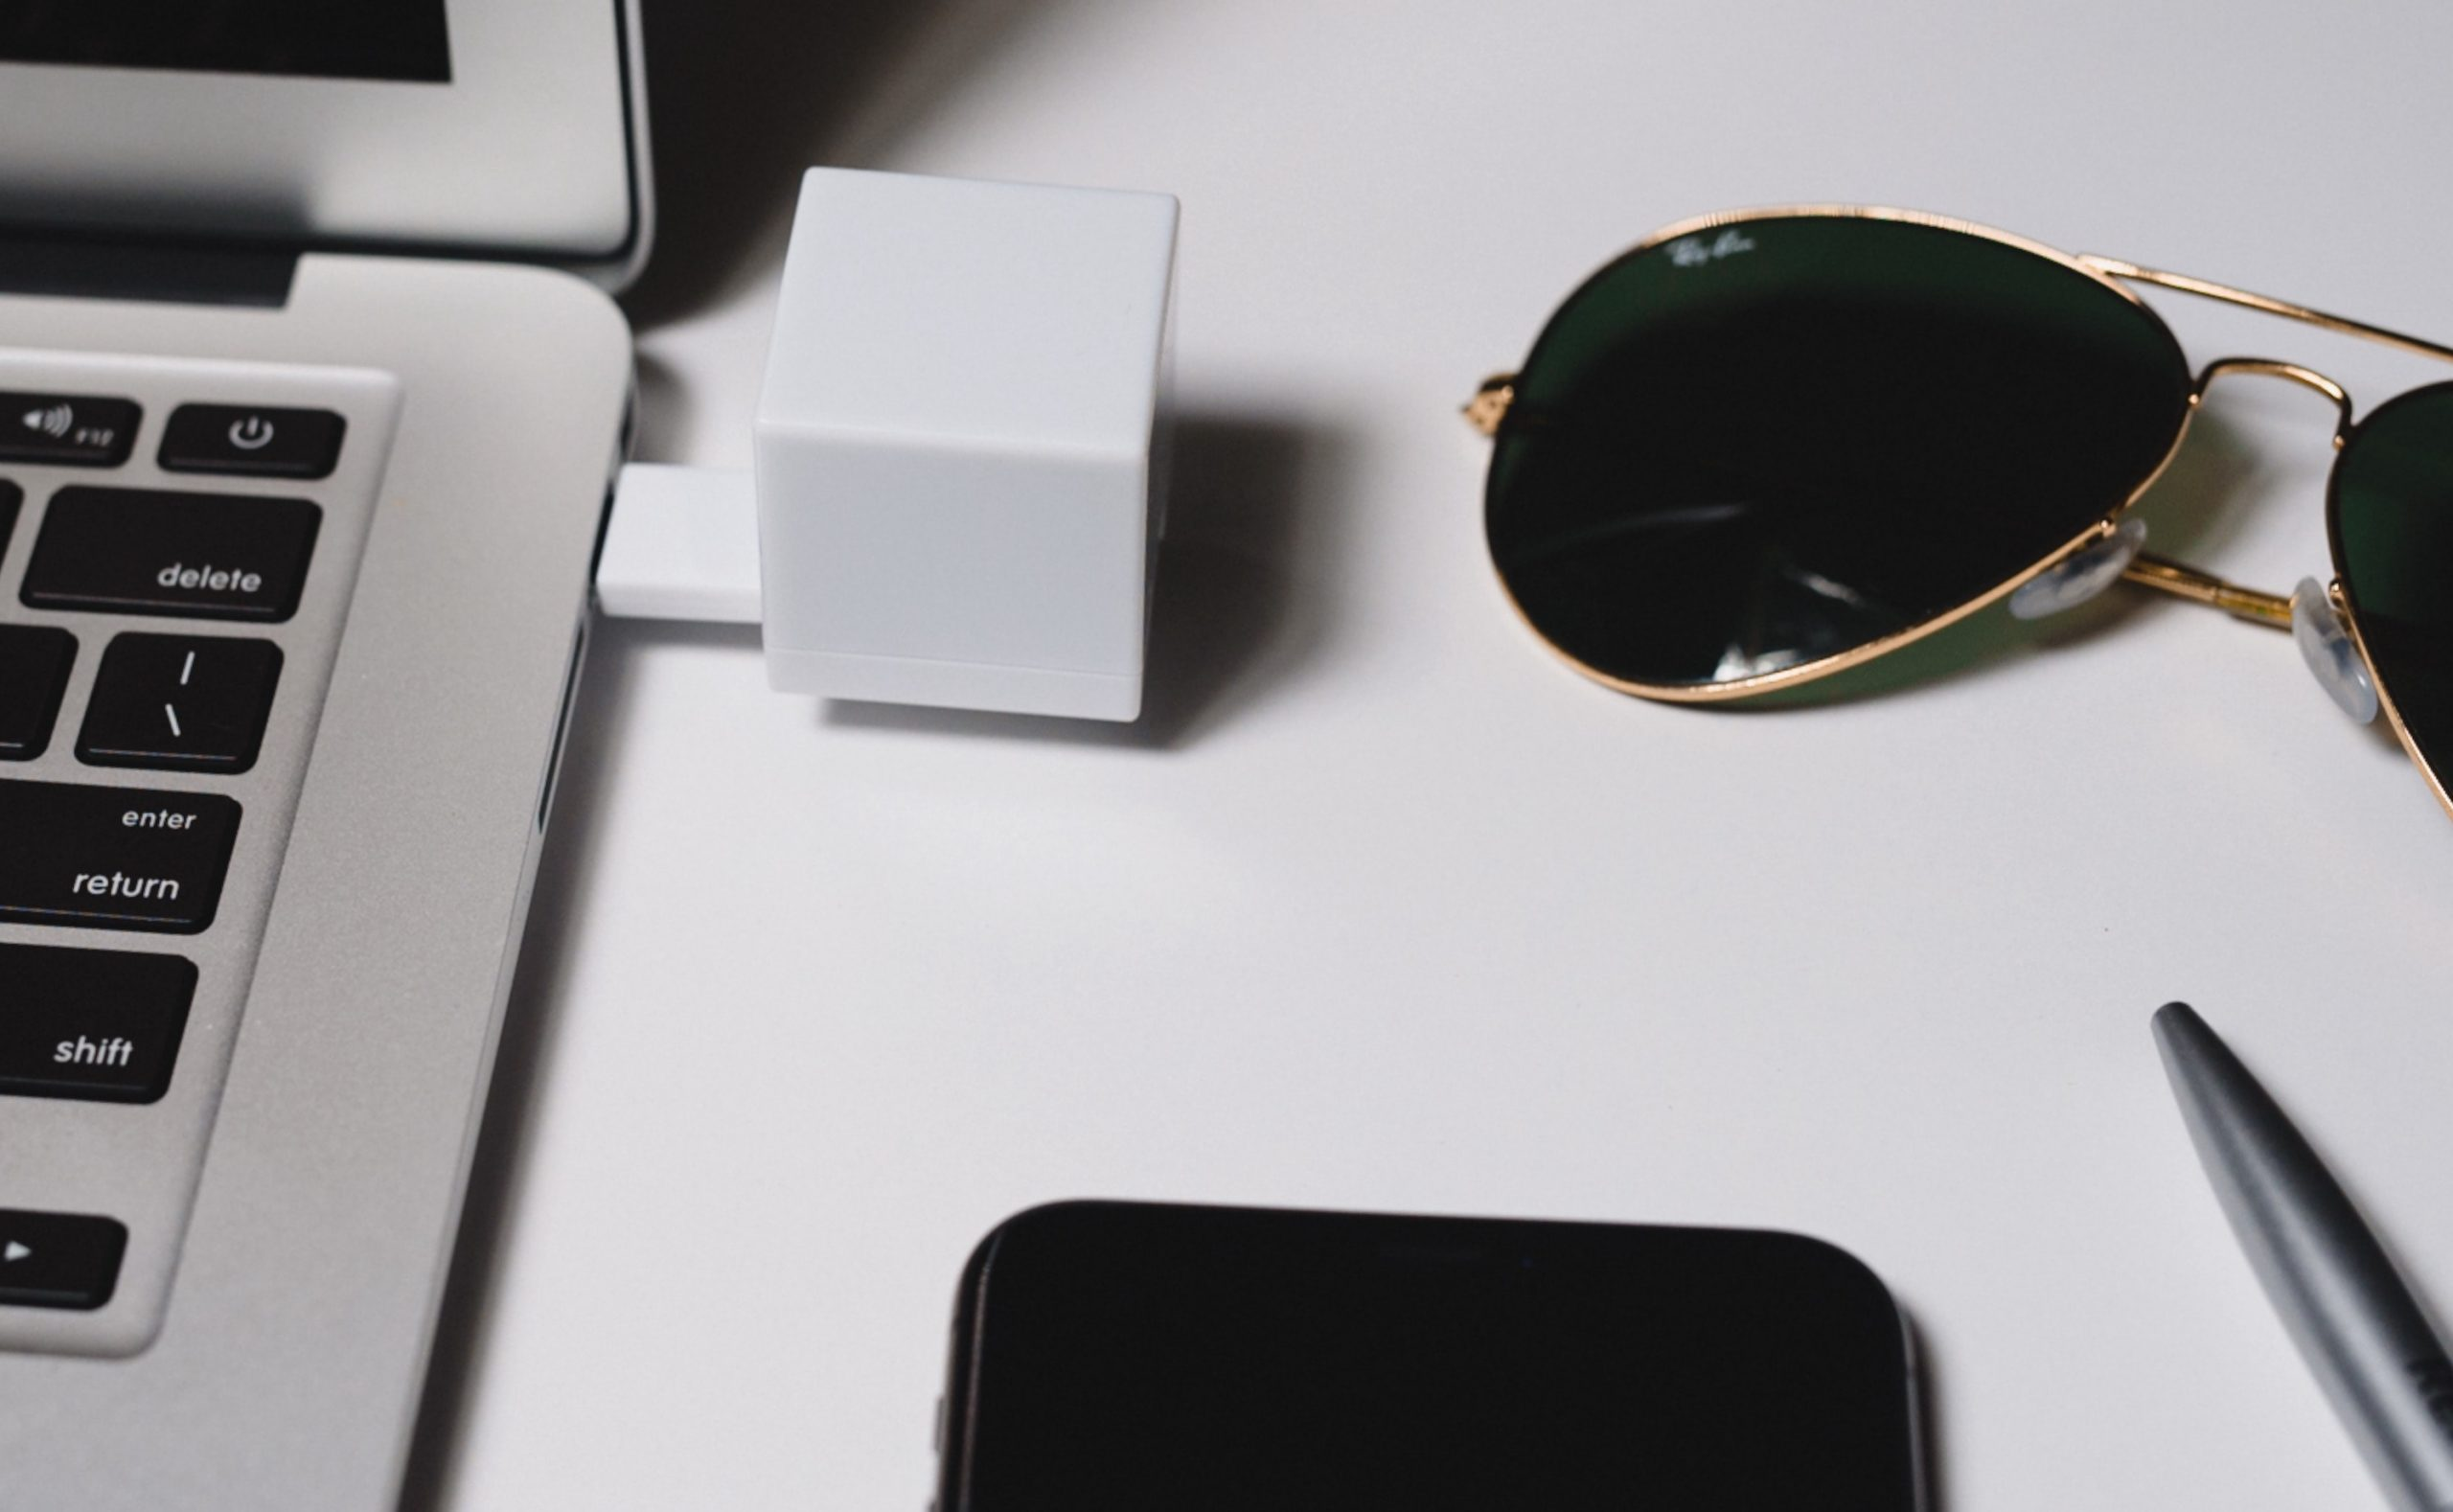 shred cube ready to delete files next to sunglasses